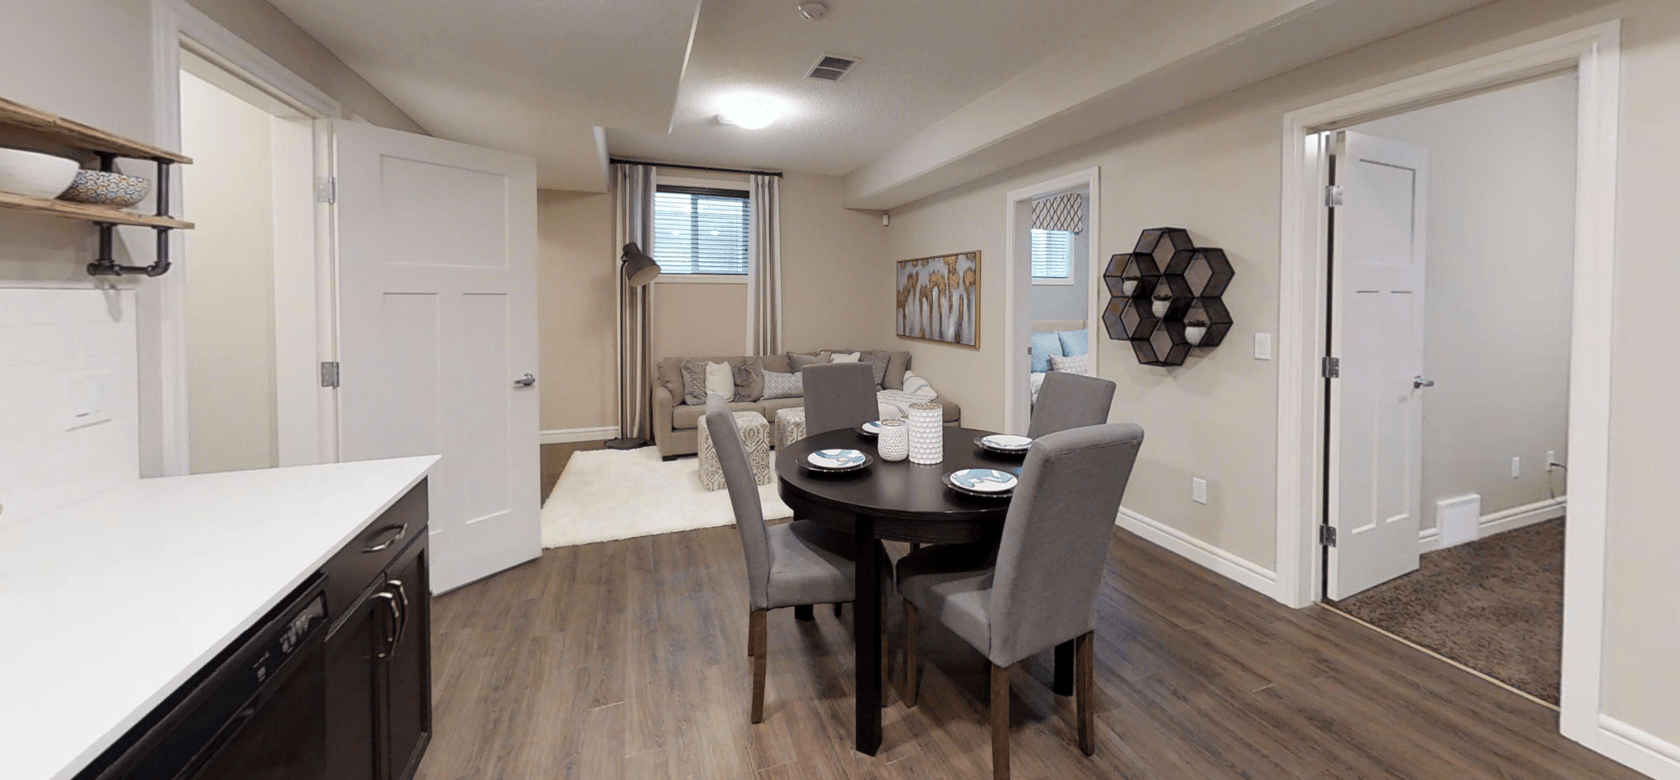 Basement Suites: Independent Living Close to Home Featured Image